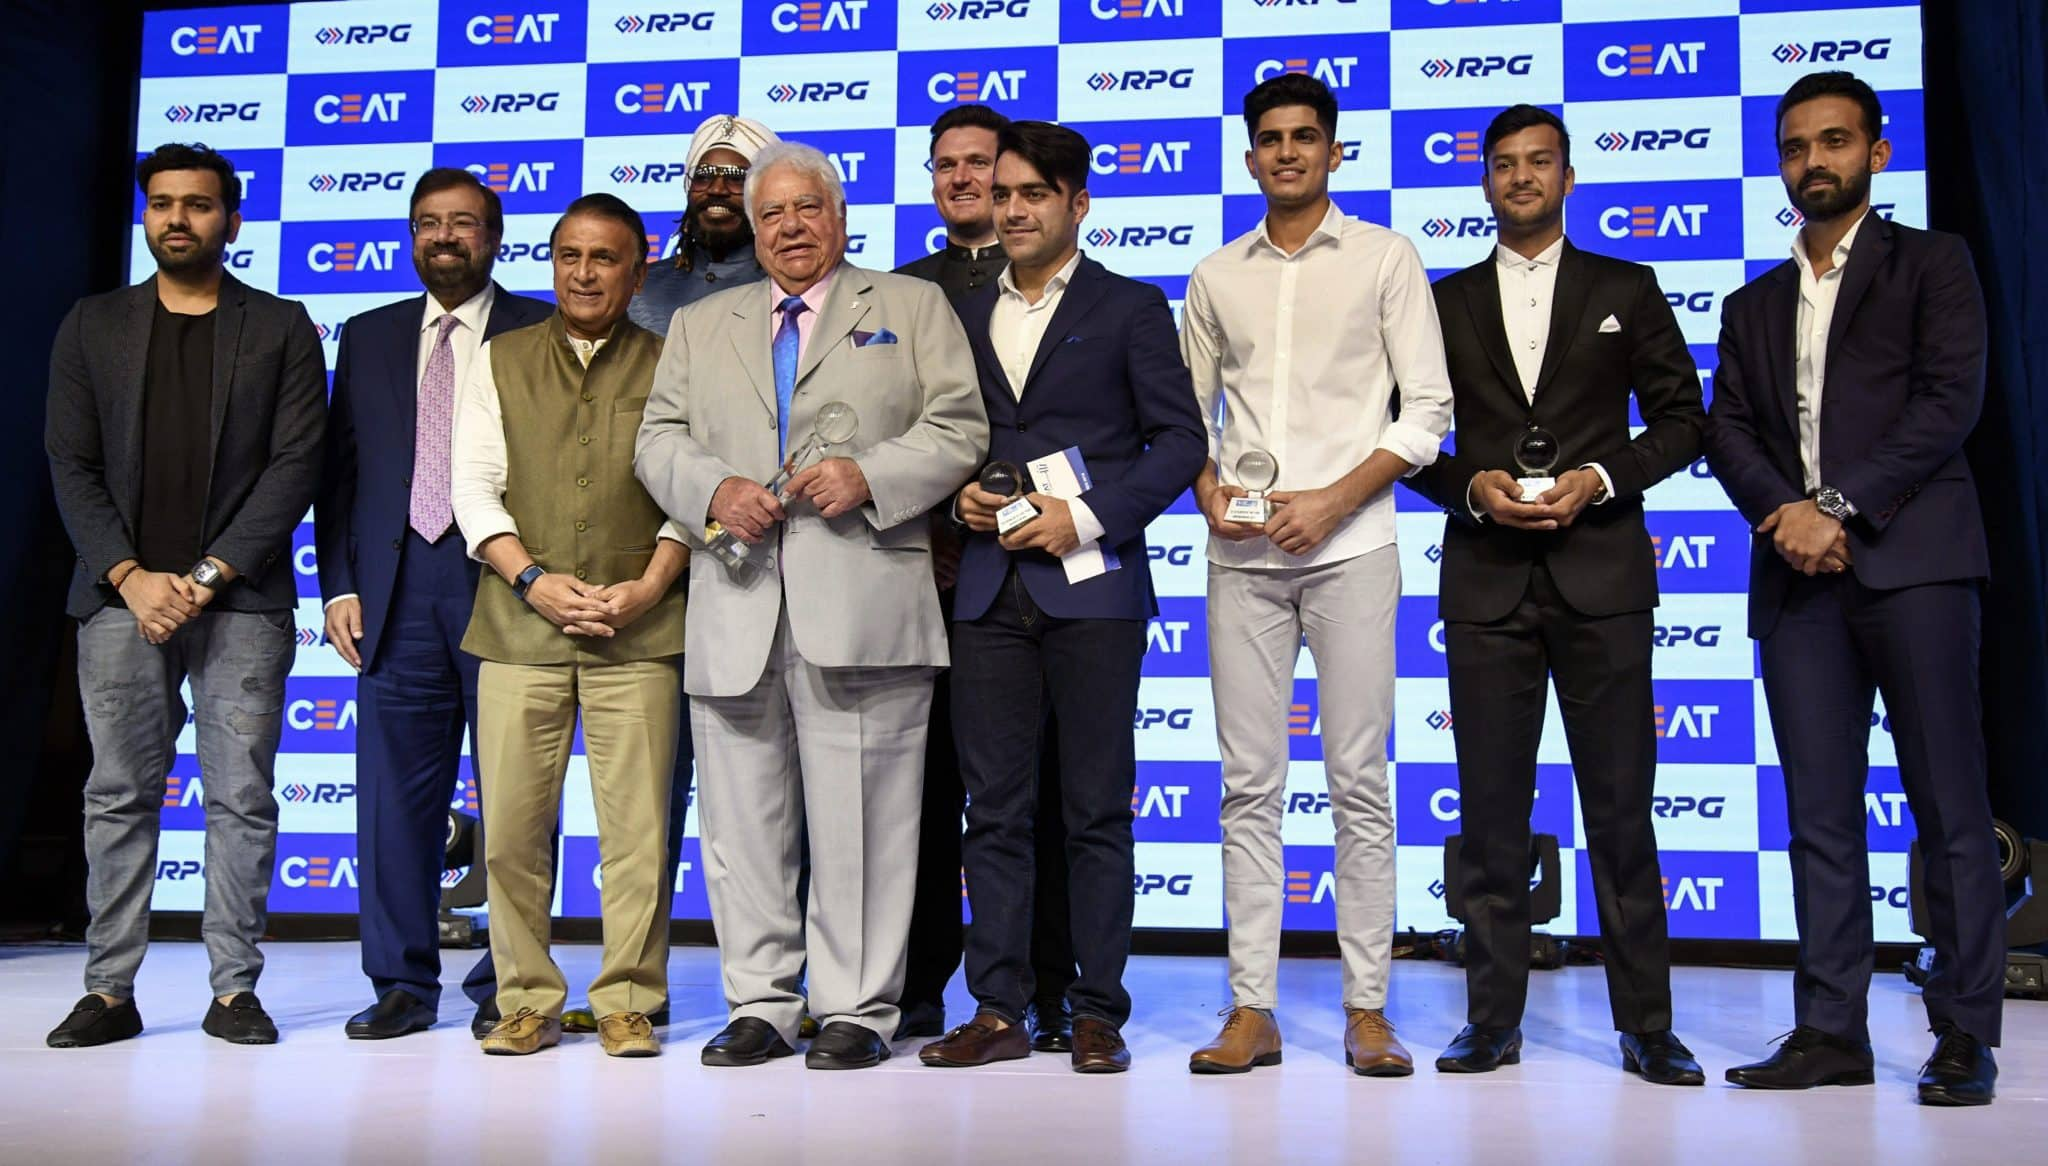 Ceat Cricket Awards Scaled